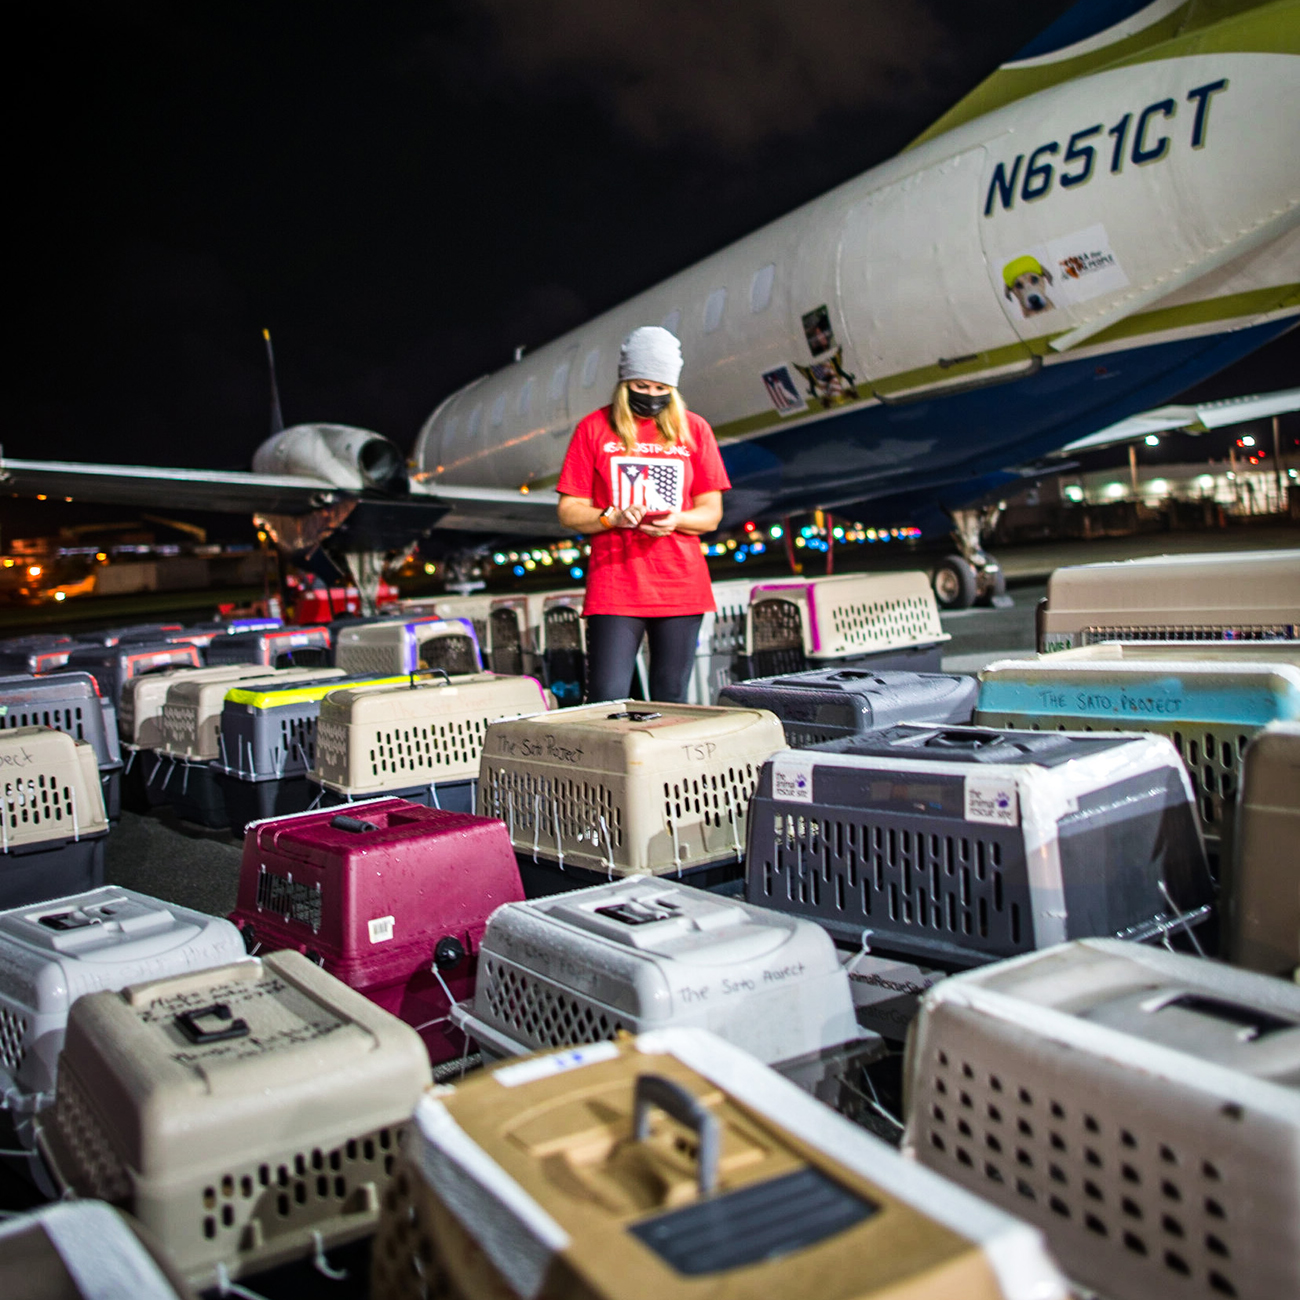 dog rescue at airport checking in hundreds of dogs.